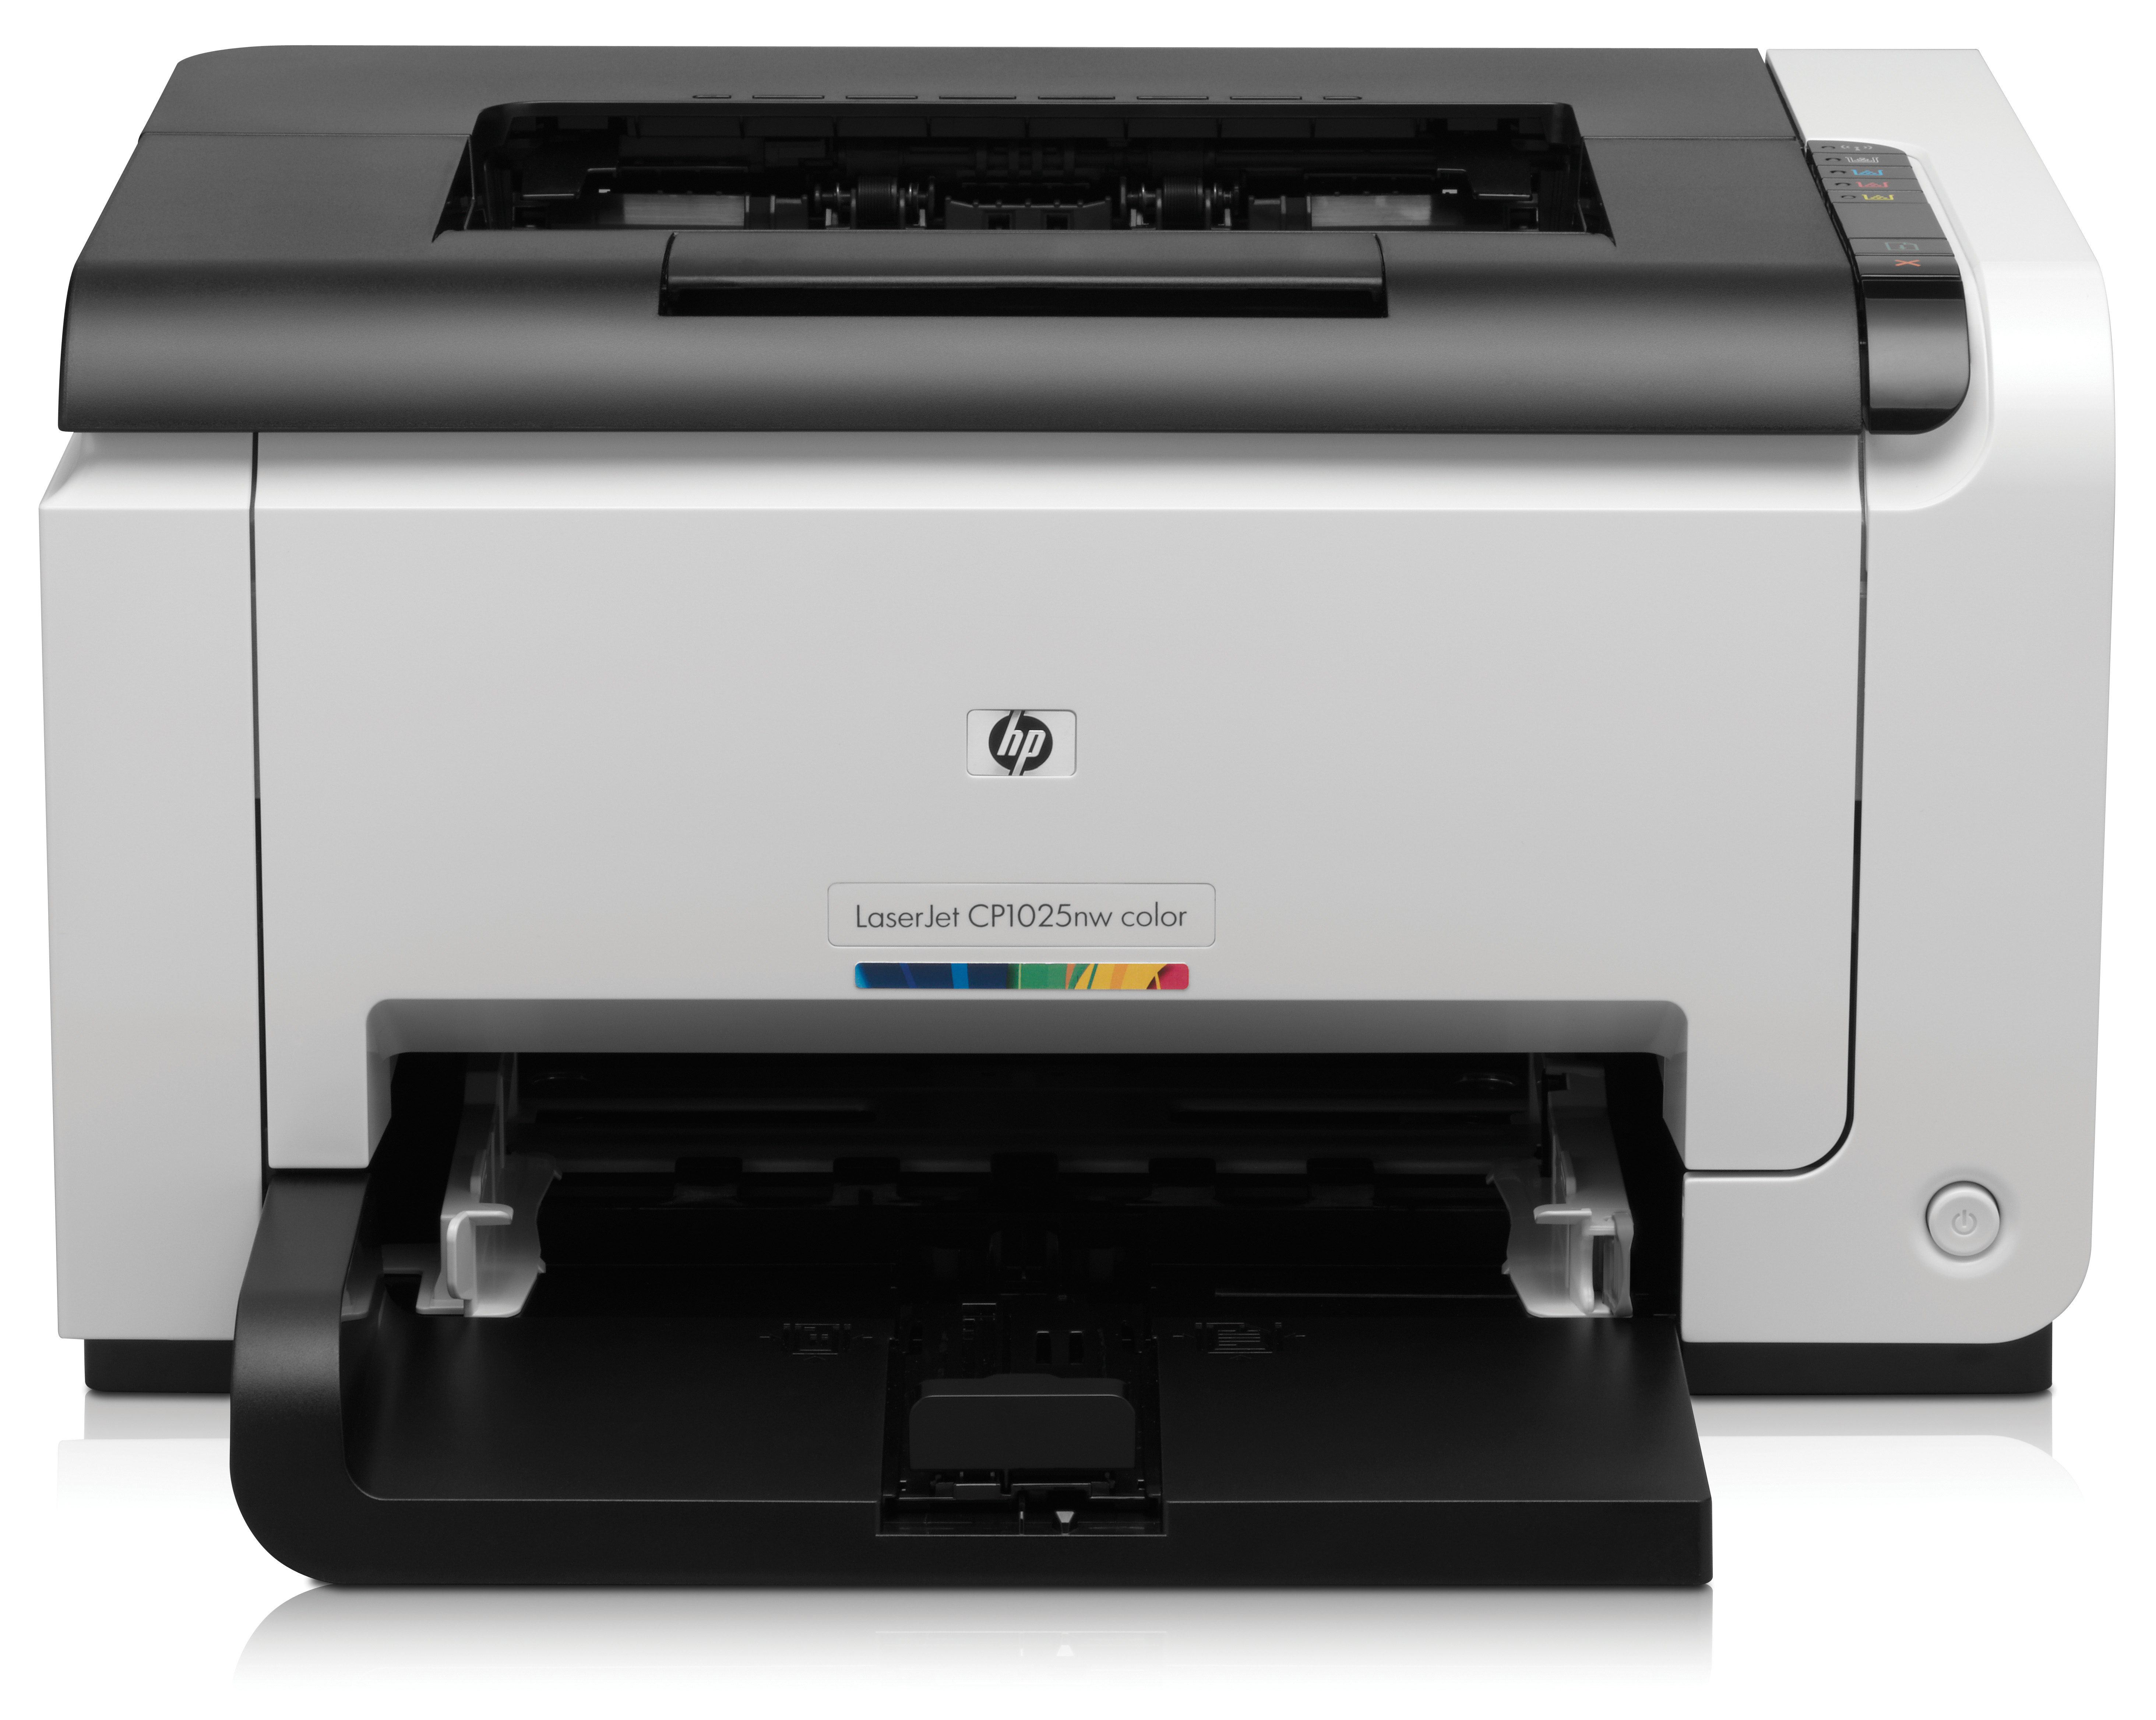 HP Color LaserJet Pro CP1025nw Wireless Laser Printer CE918A - Refurbished